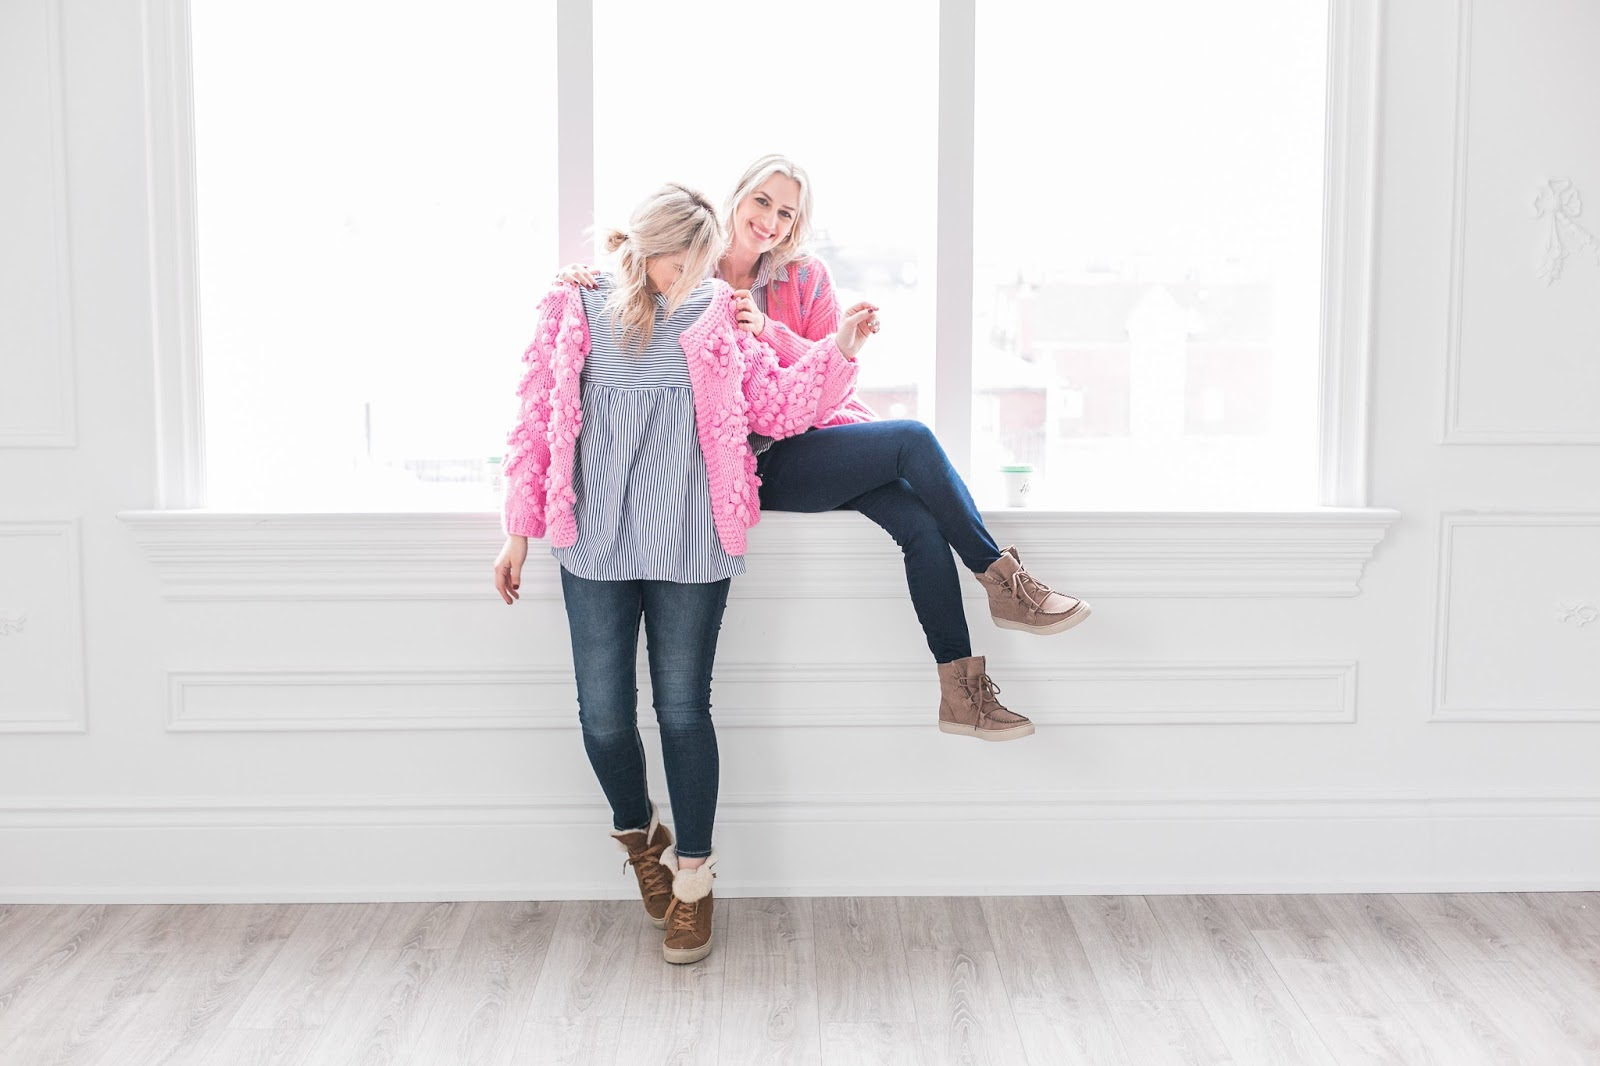 Bijuleni | 2 Transitional Boots You Need For Spring | Sisters wearing matching pink cozy sweaters, skinny jeans and striped shirt.